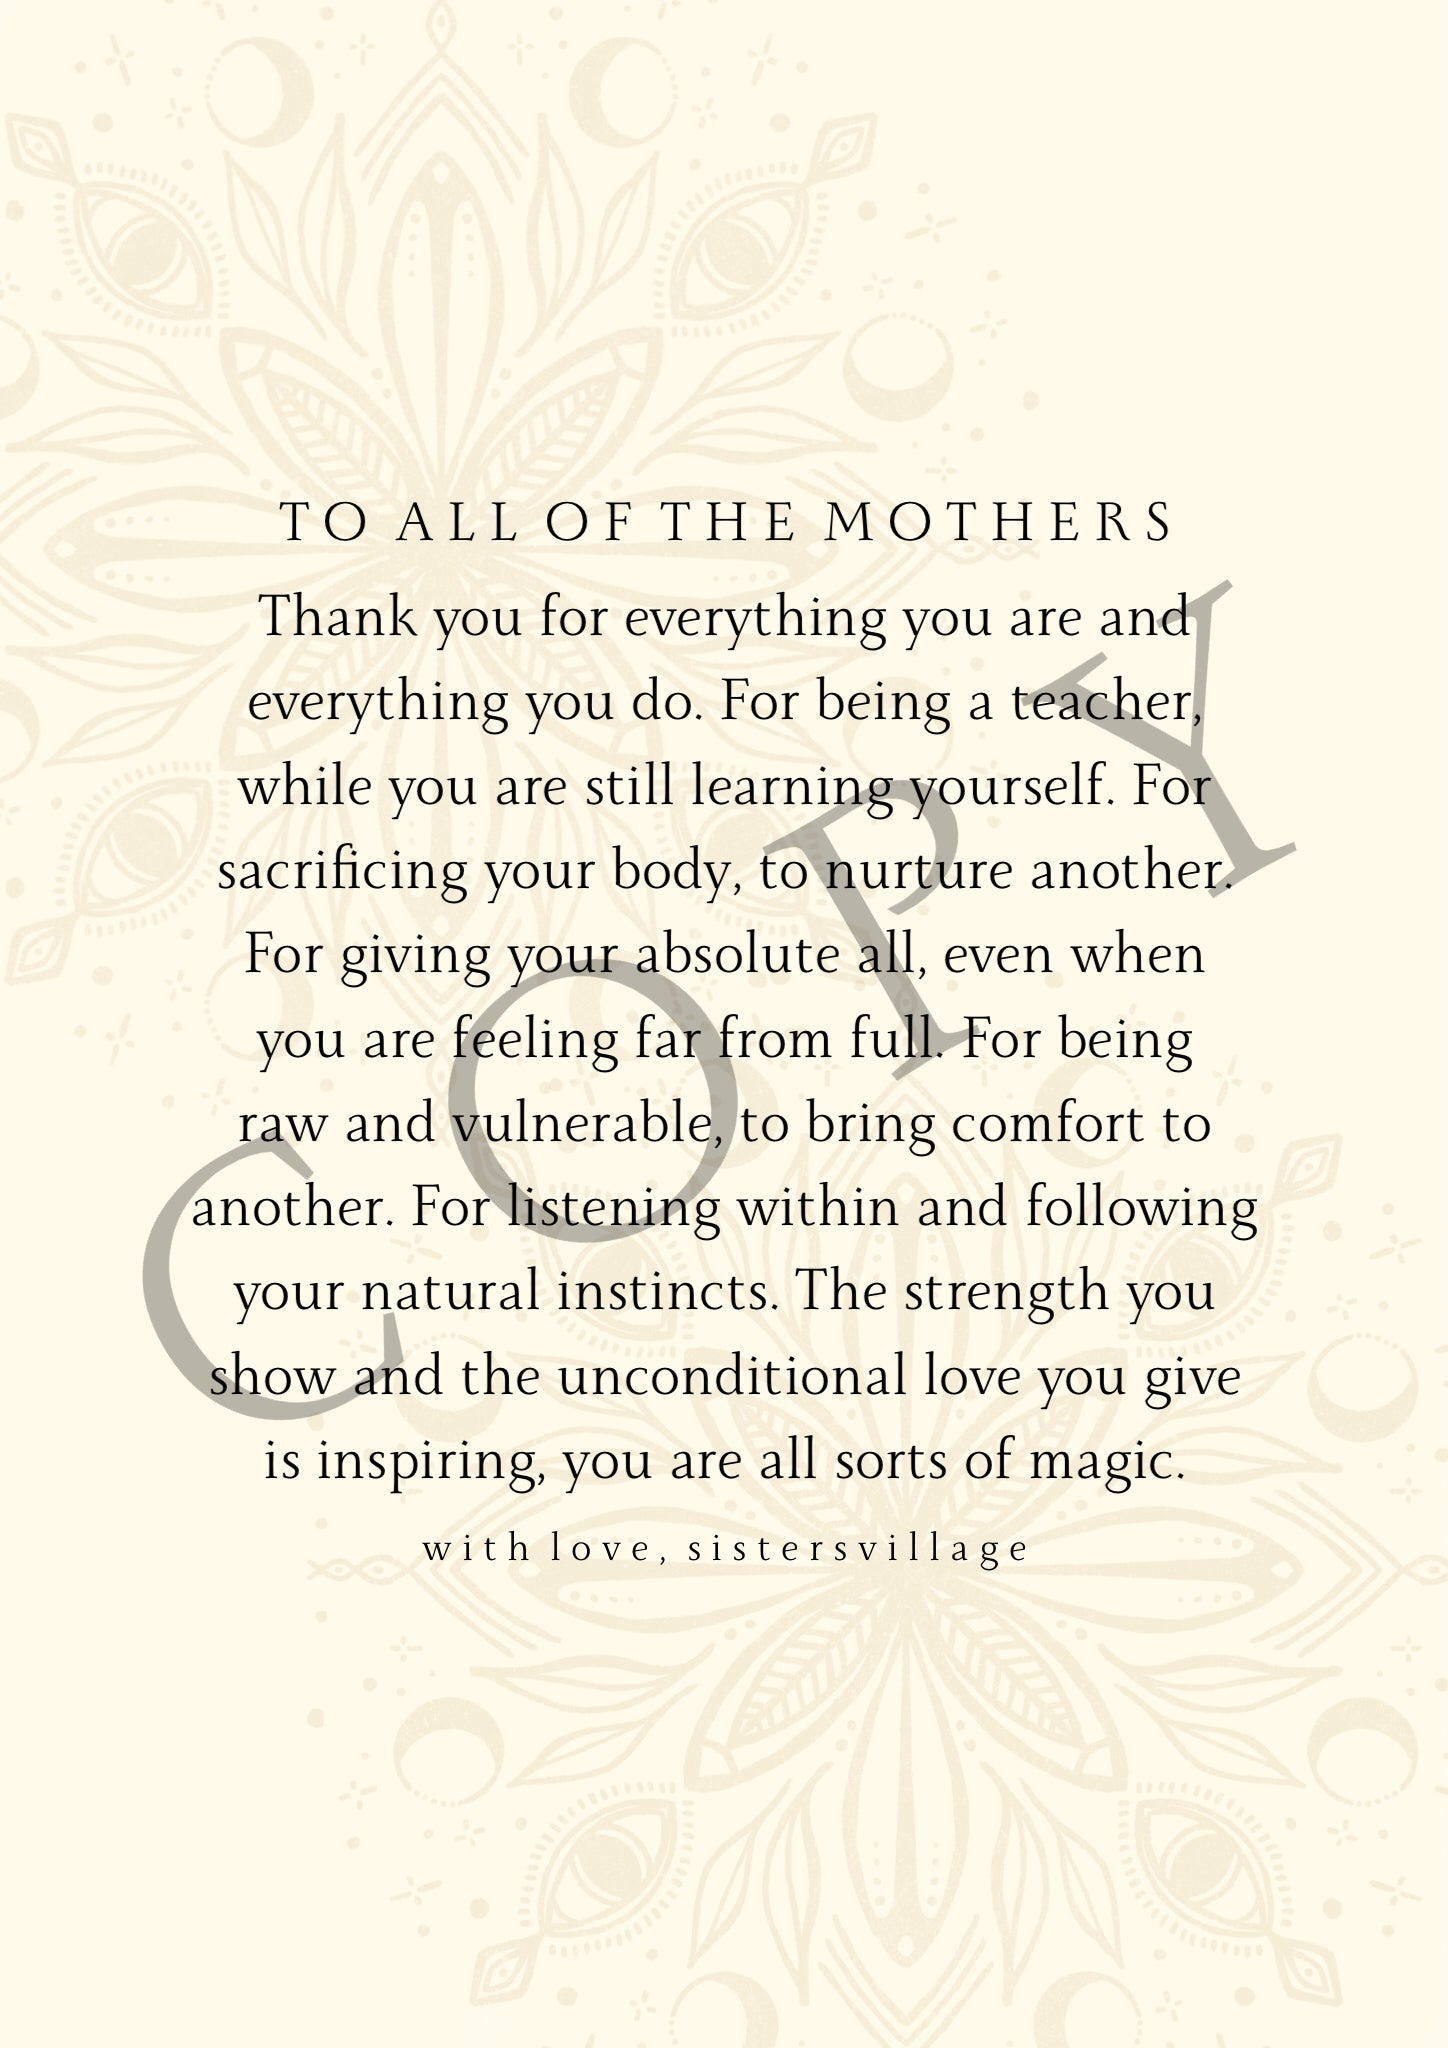 TO ALL OF THE MOTHERS DIGITAL PRINT